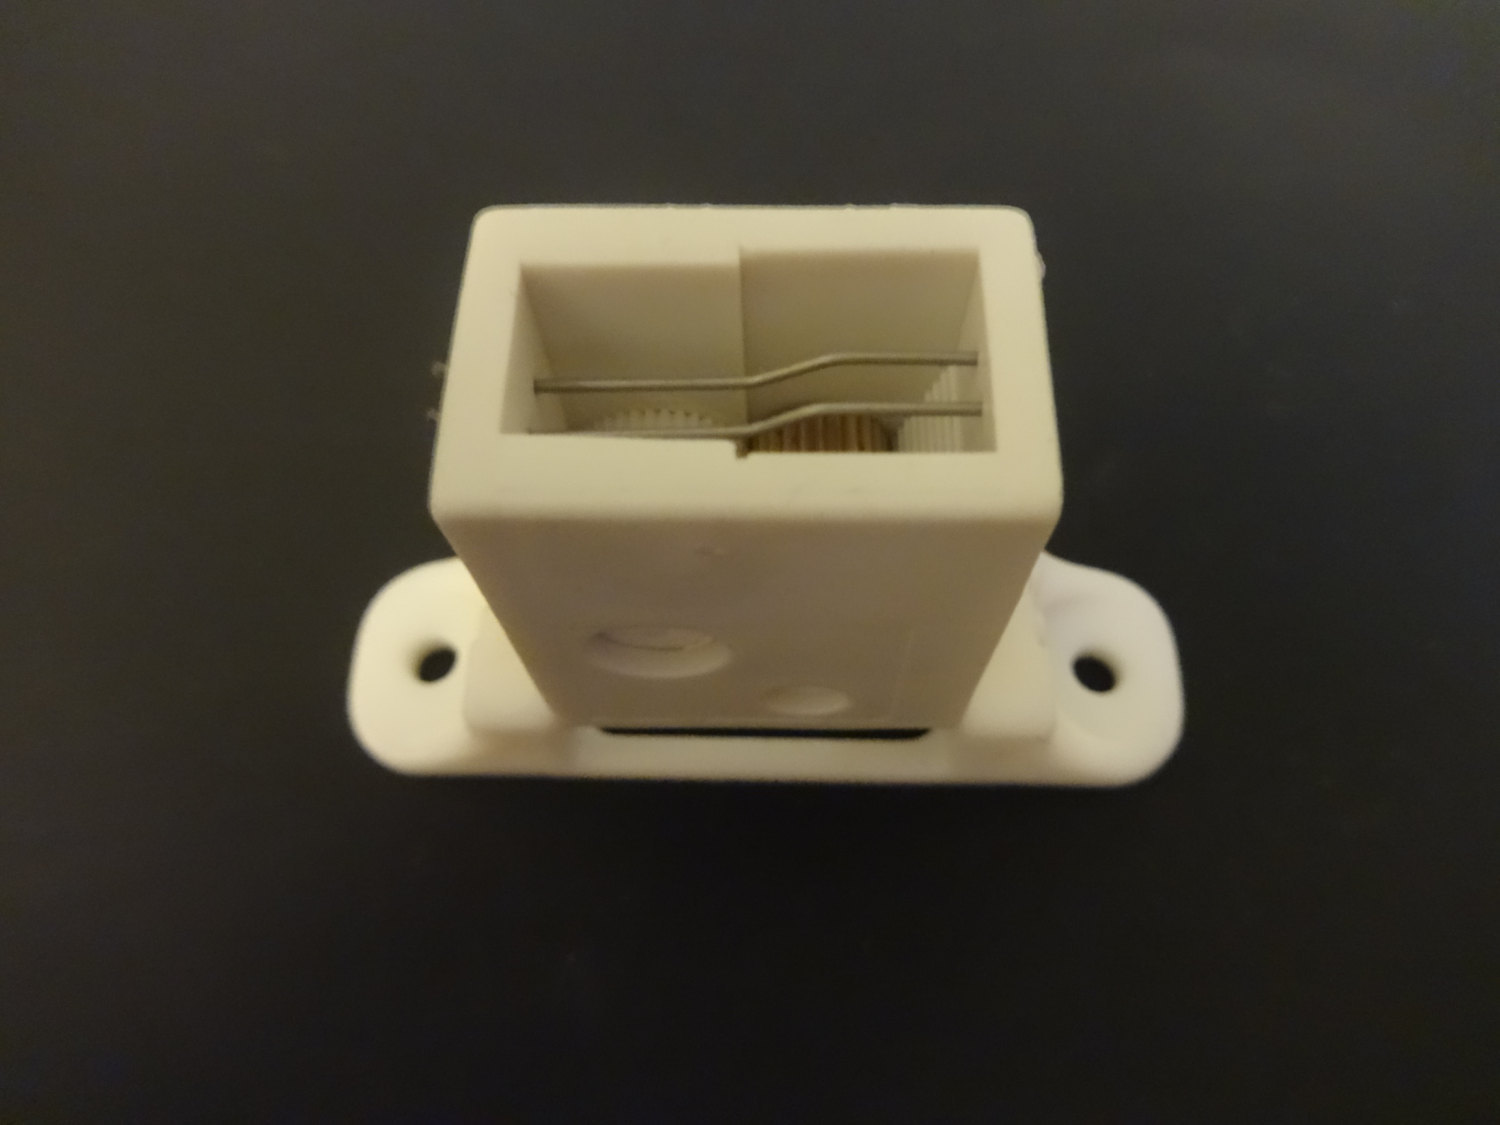 Box Style ROMAN SHADE Cord Lock: For up to 6 cords, in White